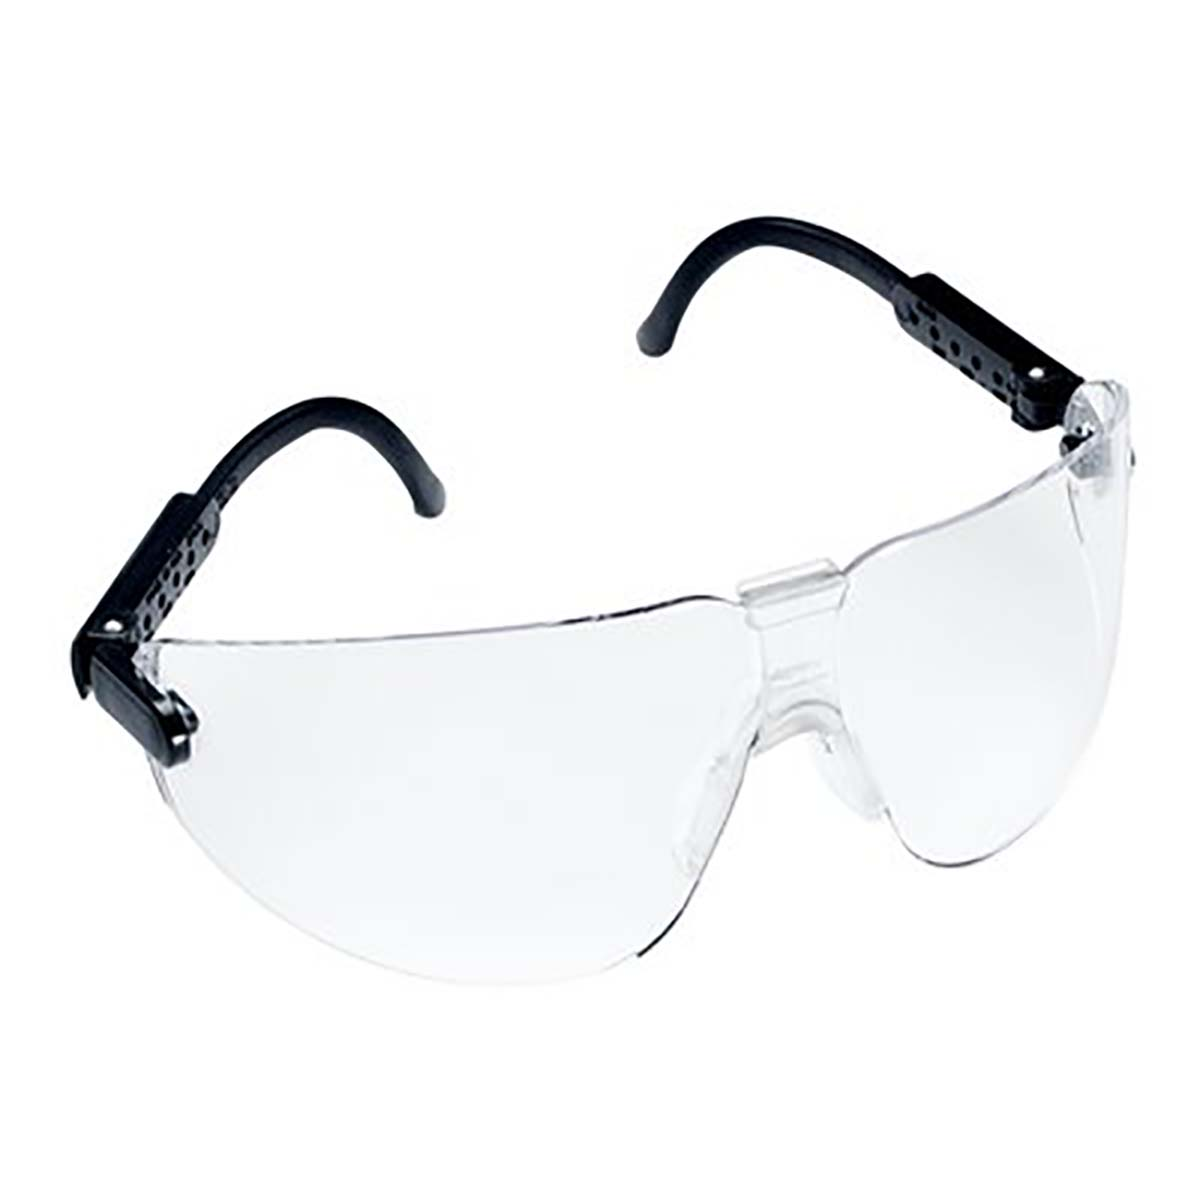 3M(TM) Lexa(TM) Protective Eyewear 15200-00000-20 Clear Anti-Fog Lens, Black Temple, Medium